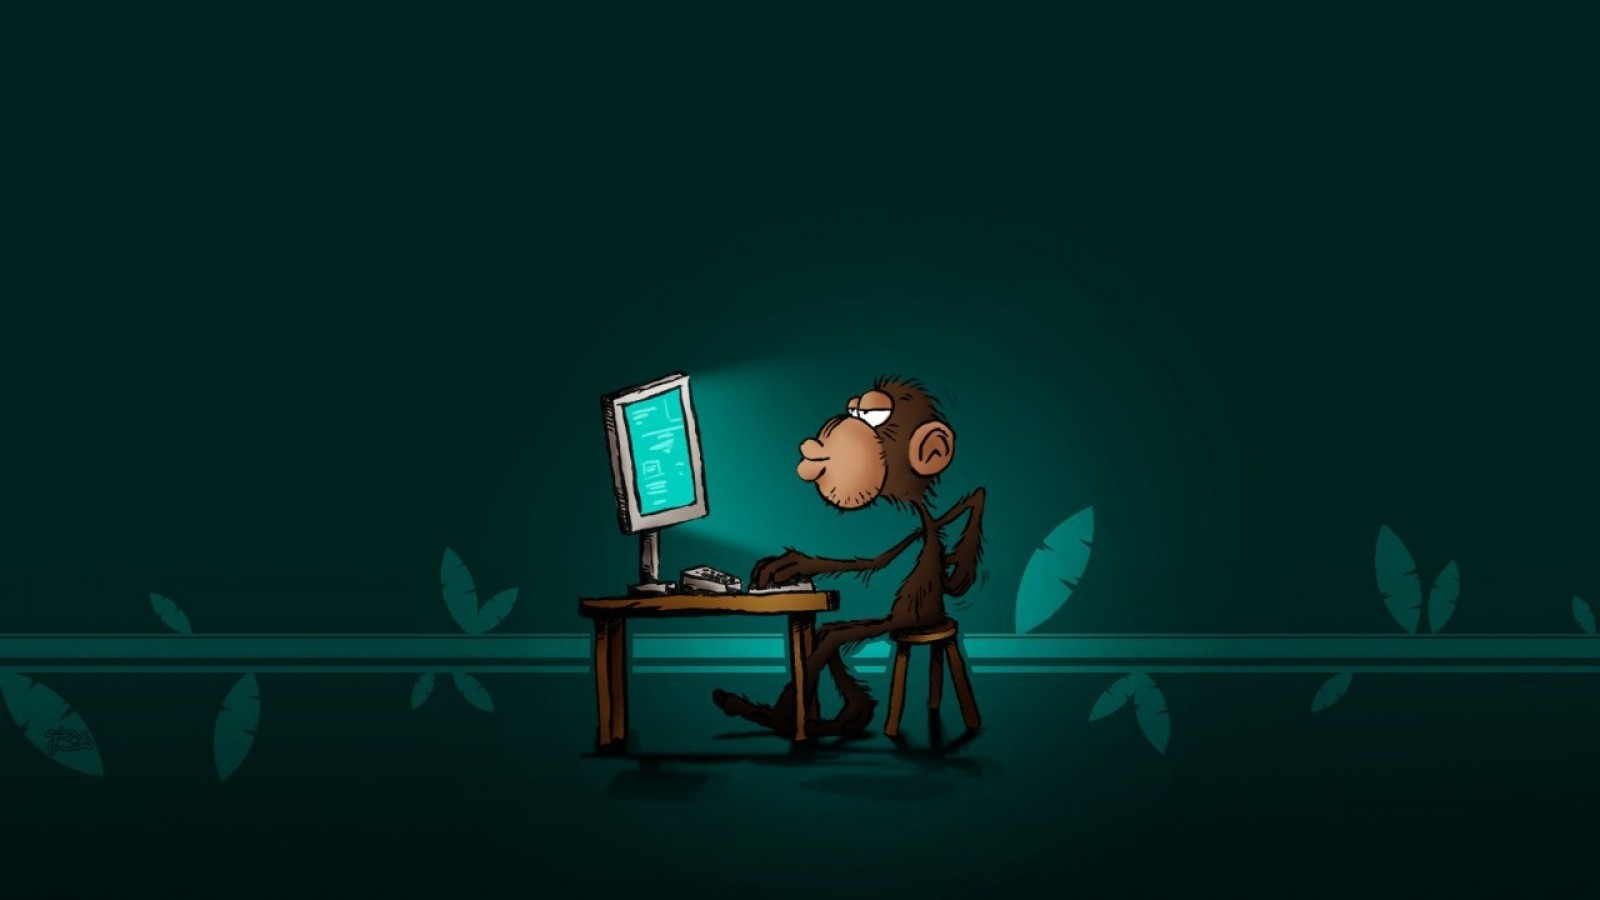 Monkey on the computer wallpaper – HD Wallpapers , HD ...